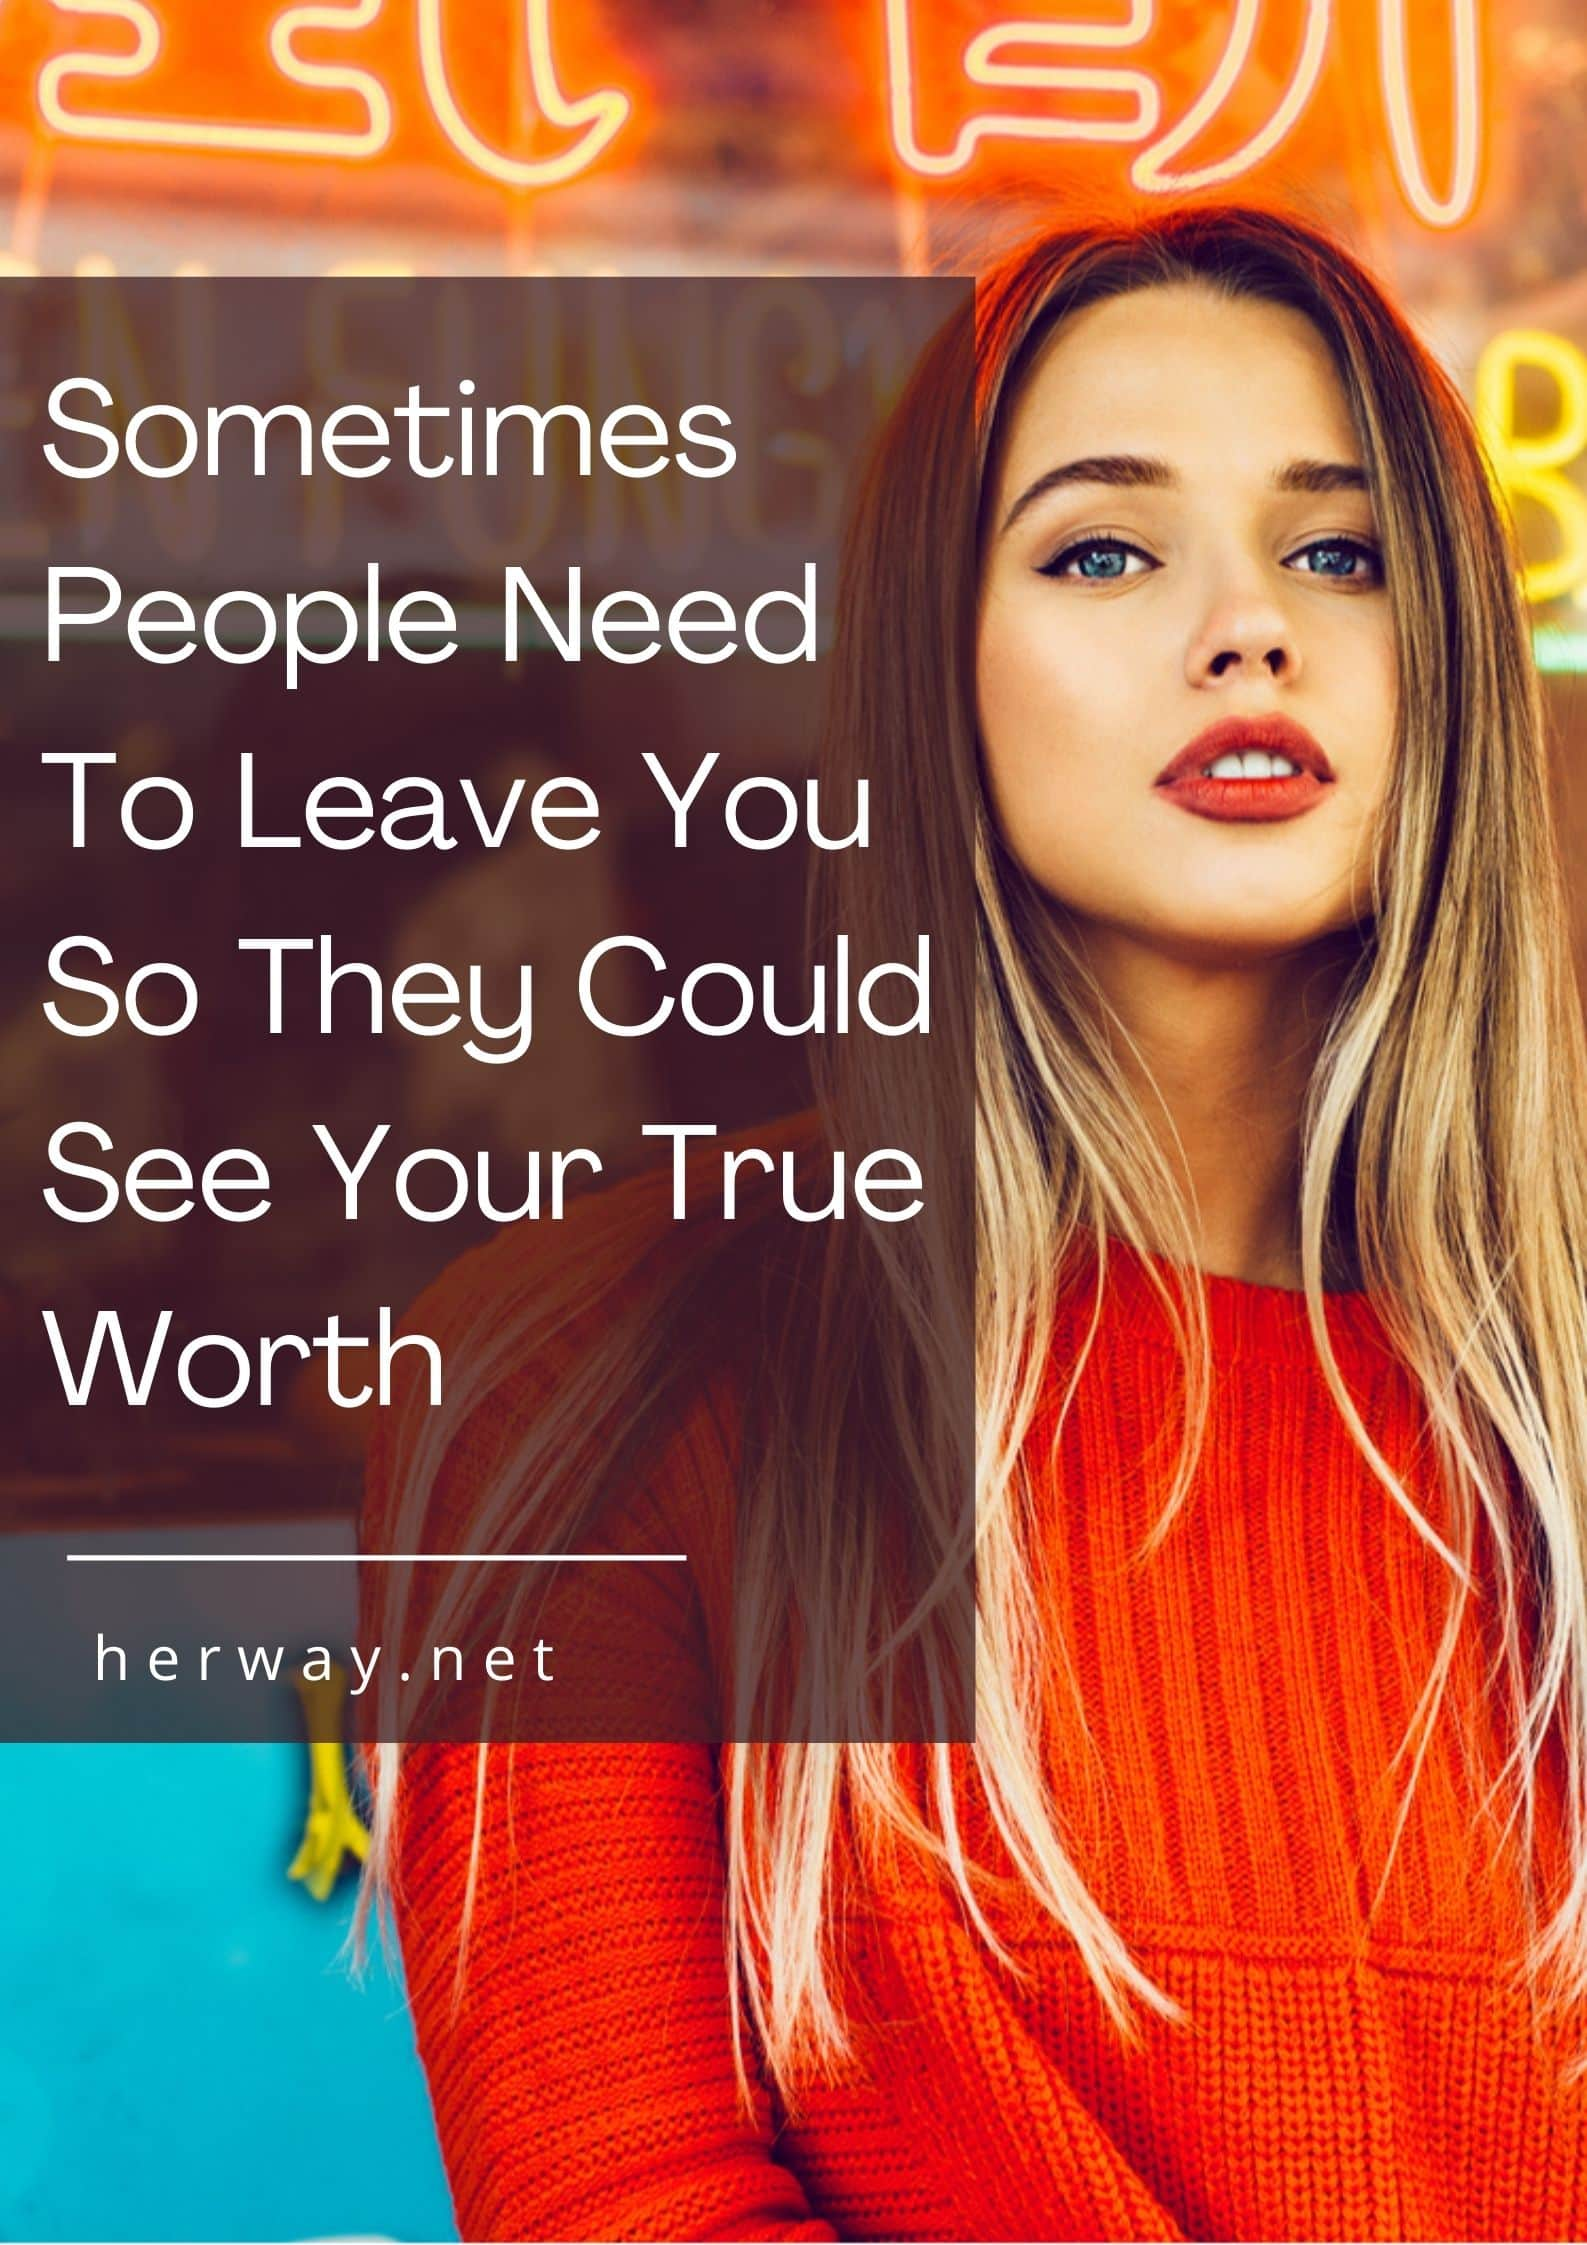 Sometimes People Need To Leave You So They Could See Your True Worth